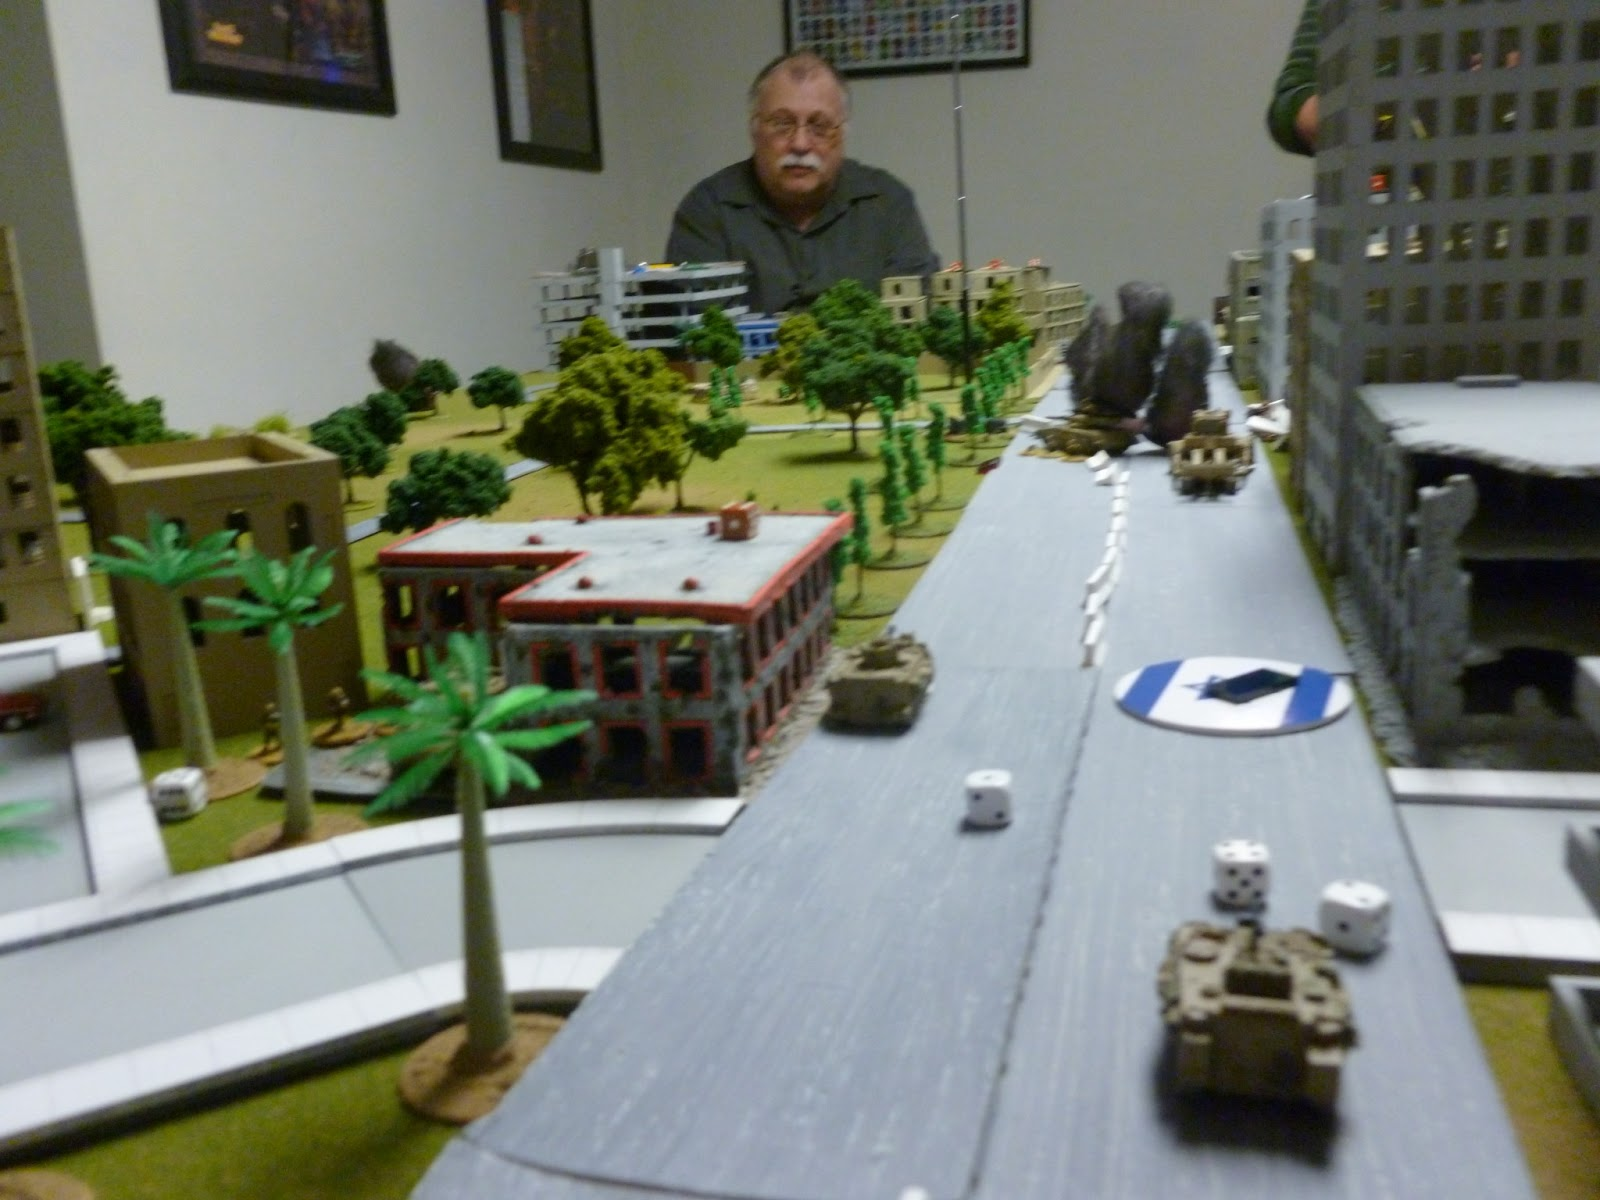 Old Sarge contemplating the mayhem from the PLO end of the table.   A couple more RPG hits and the 'dozer will surely block the opening it just made in the barricade.